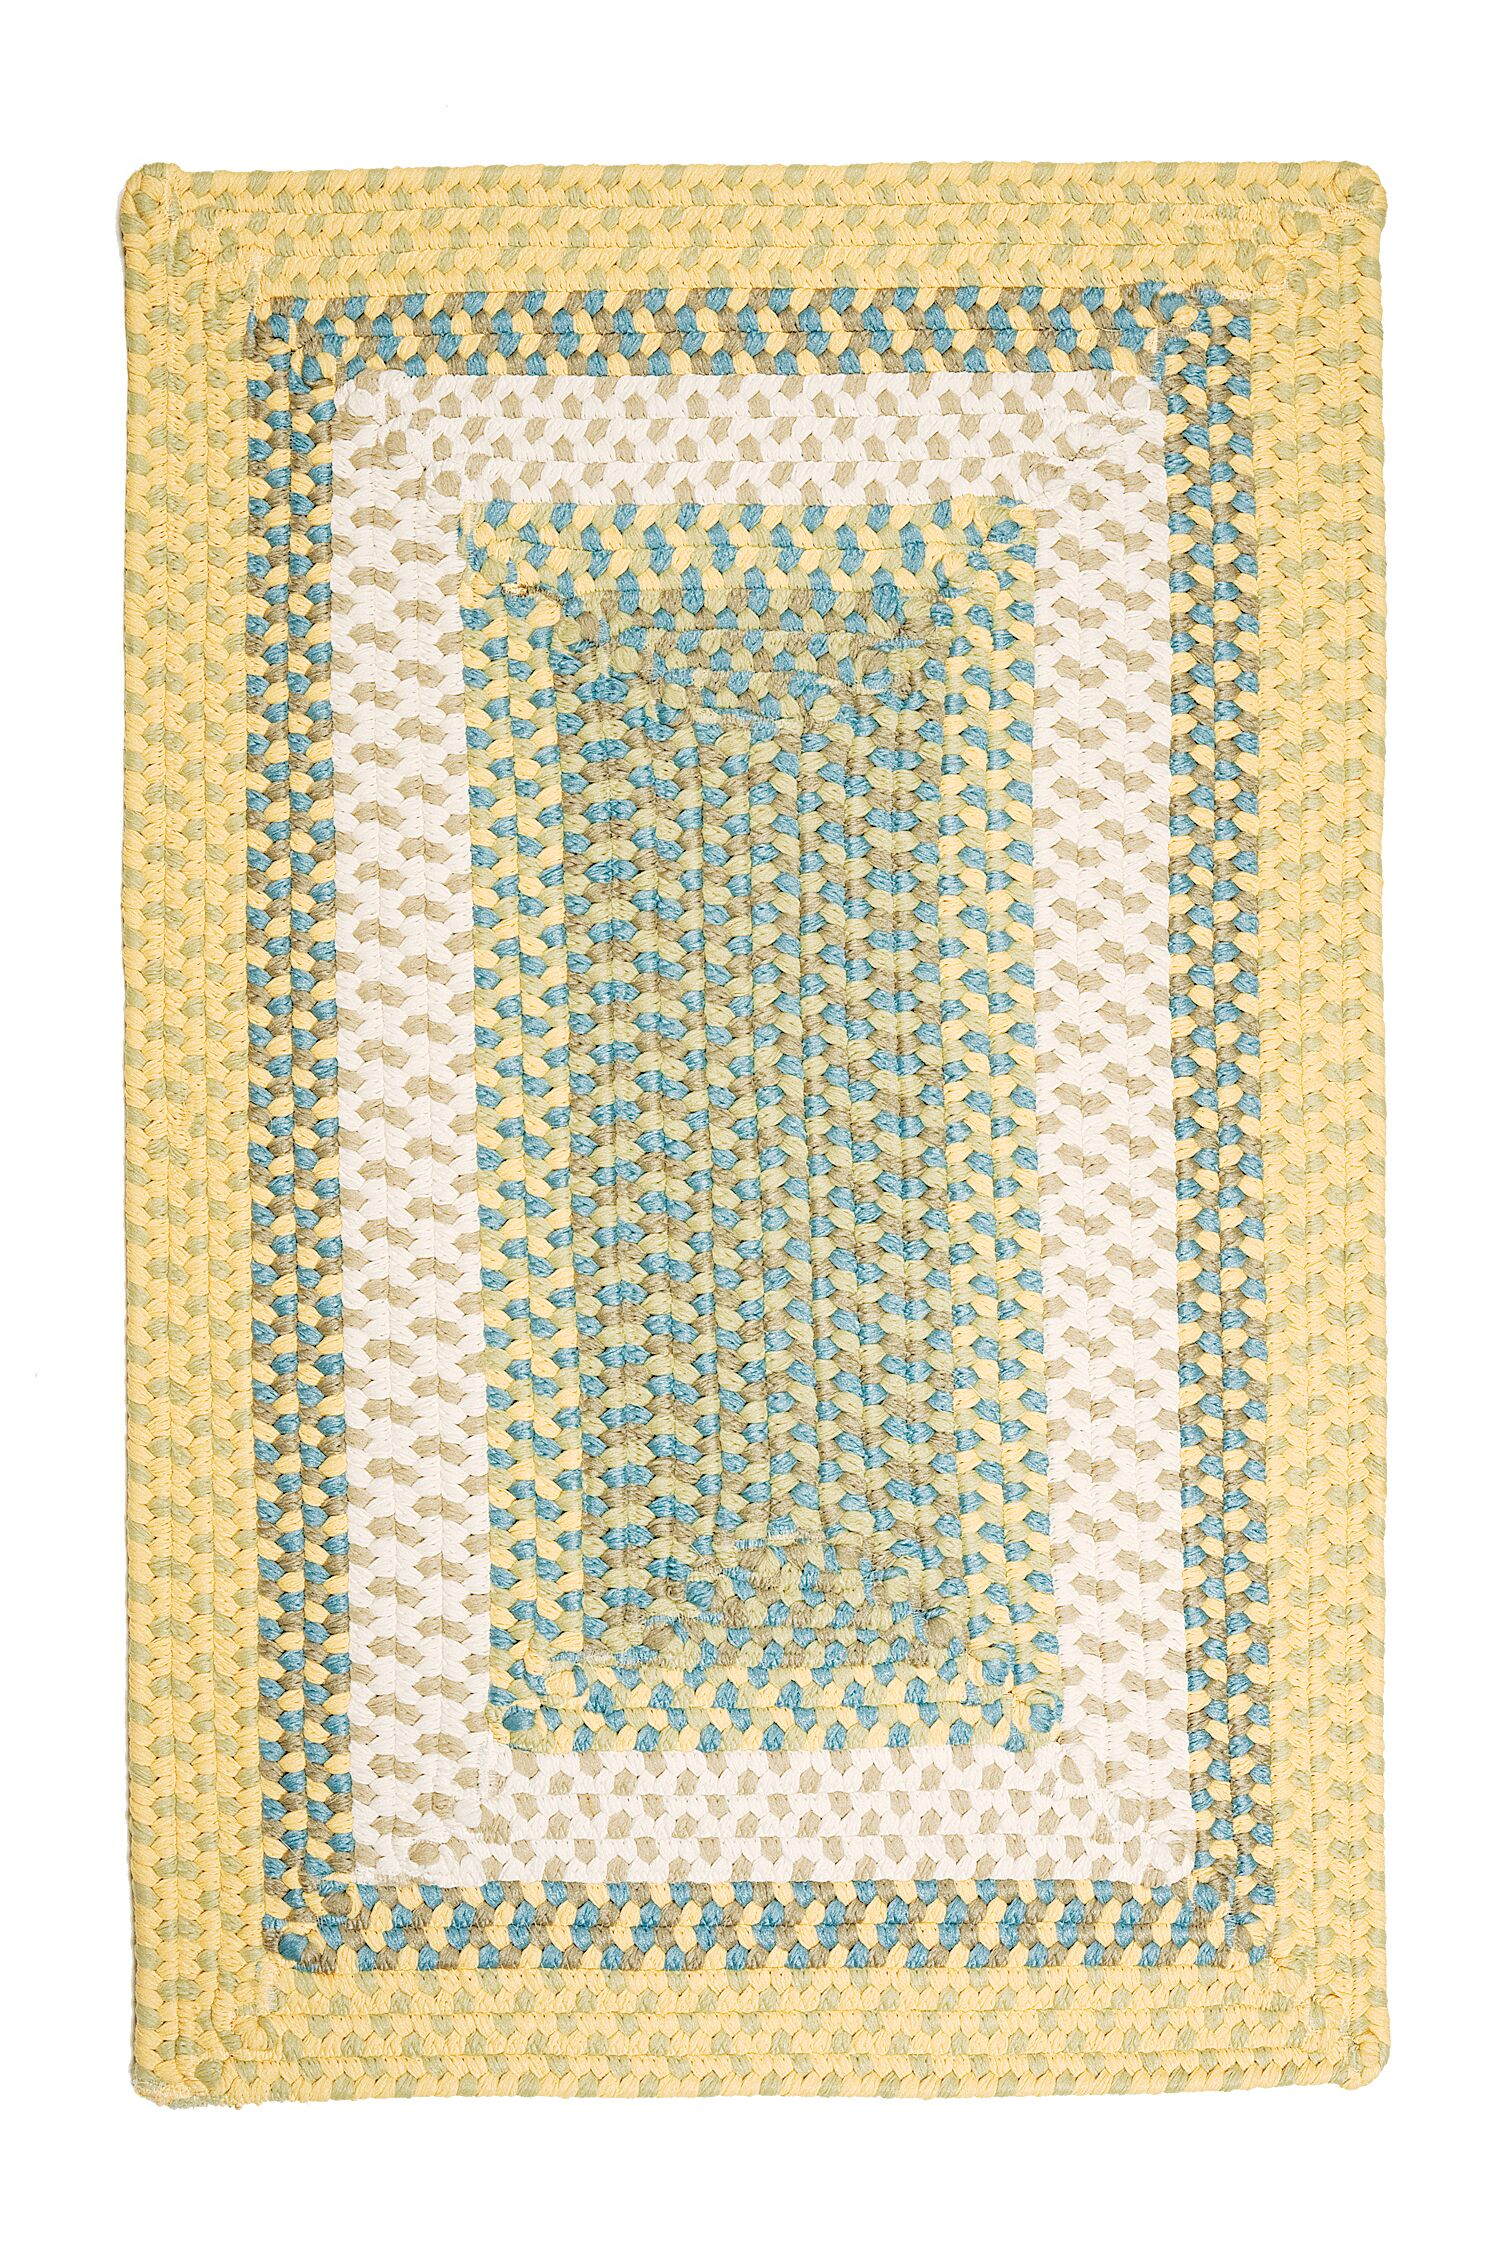 Marathovounos Sundance Kids Indoor/Outdoor Area Rug Rug Size: Rectangle 10' x 13'